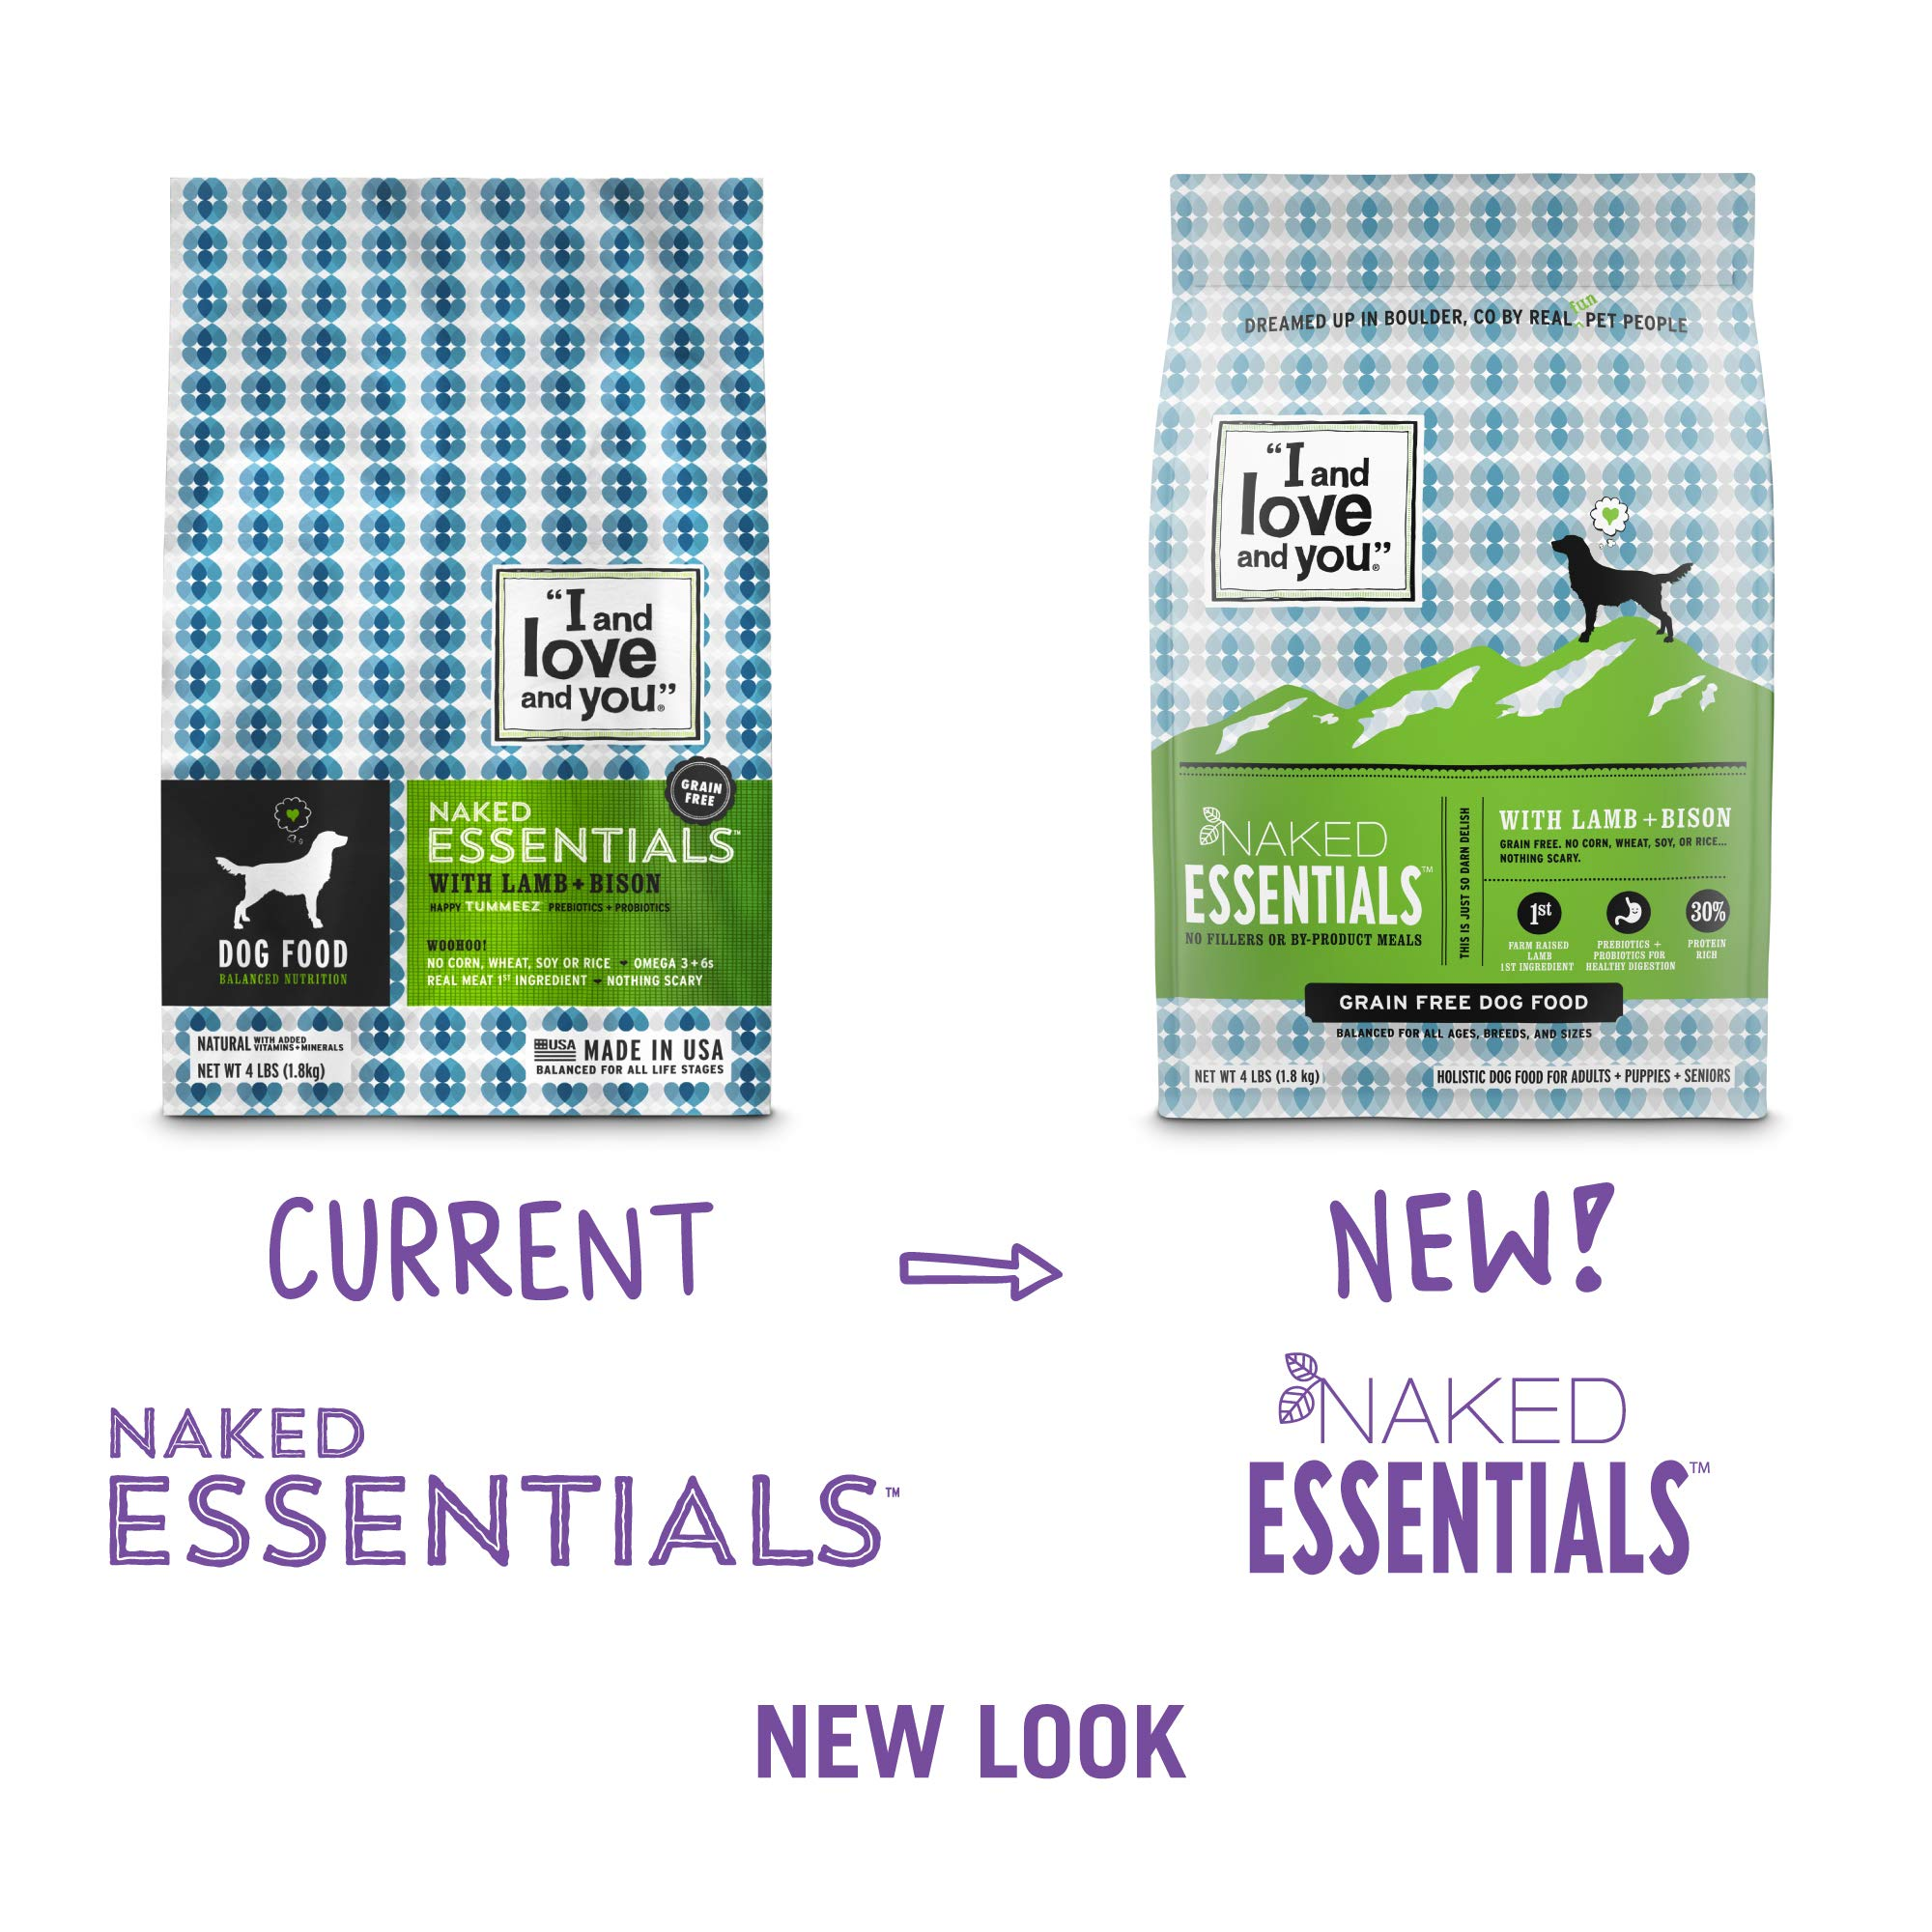 ''I and love and you'' Naked Essentials Lamb & Bison Grain Free Dry Dog Food, 40 LB by I and love and you (Image #3)